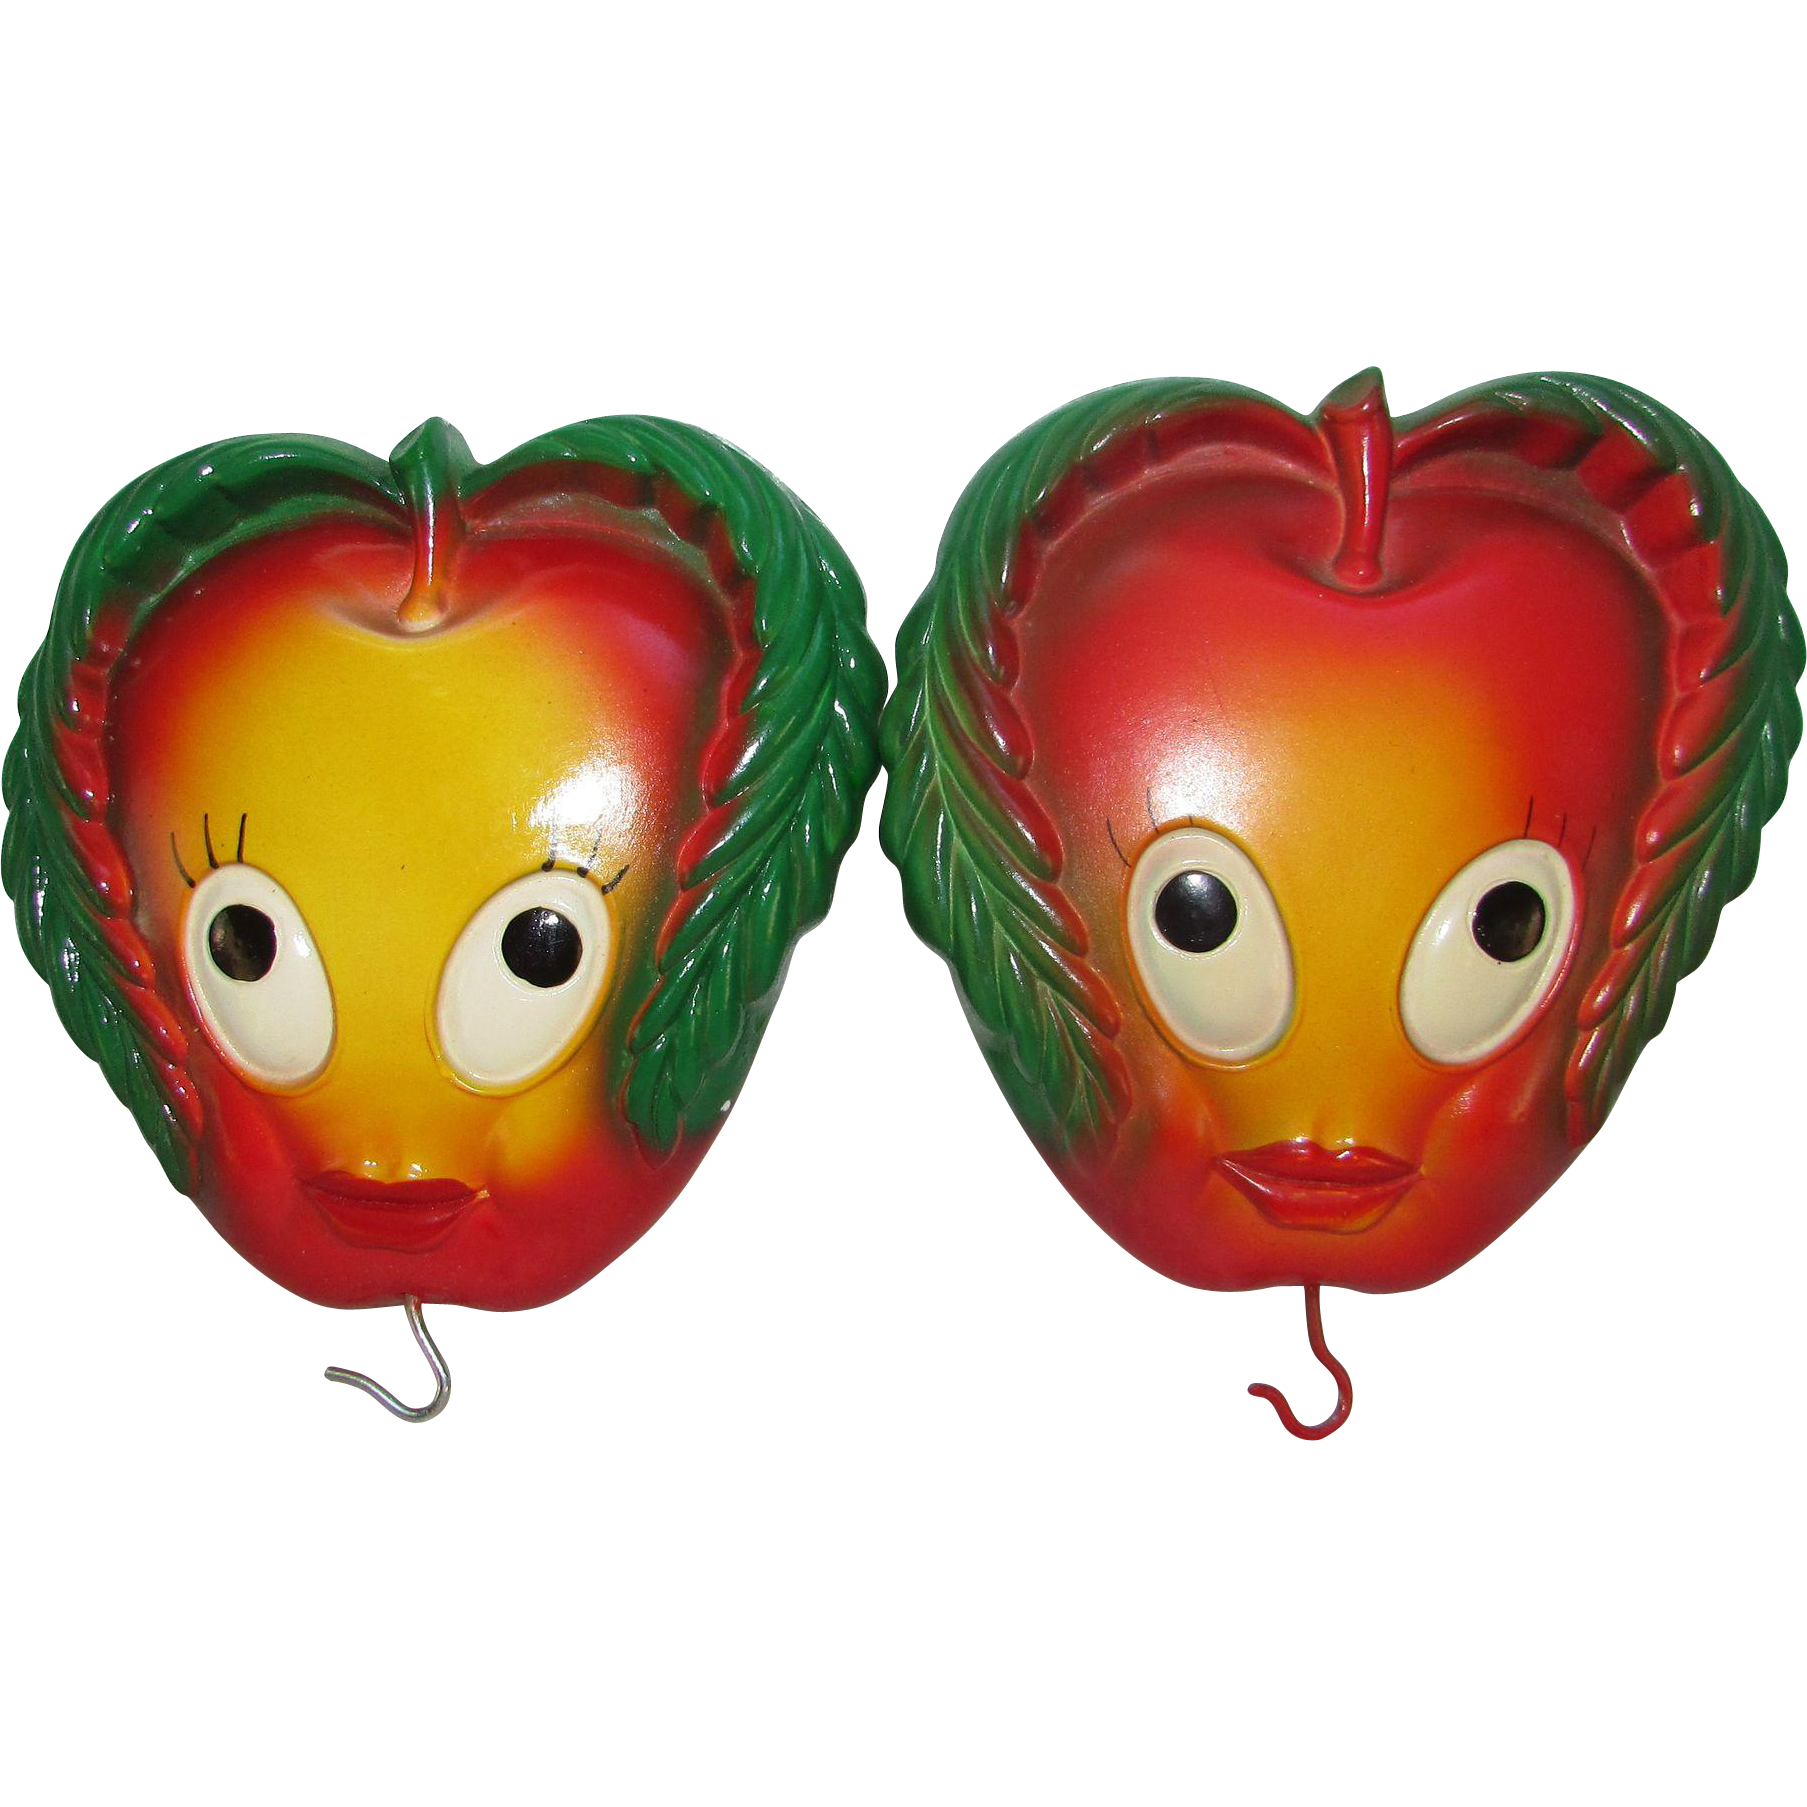 Apple chalkware wall hangings kitchen decor set of 2 for Apple kitchen decoration set